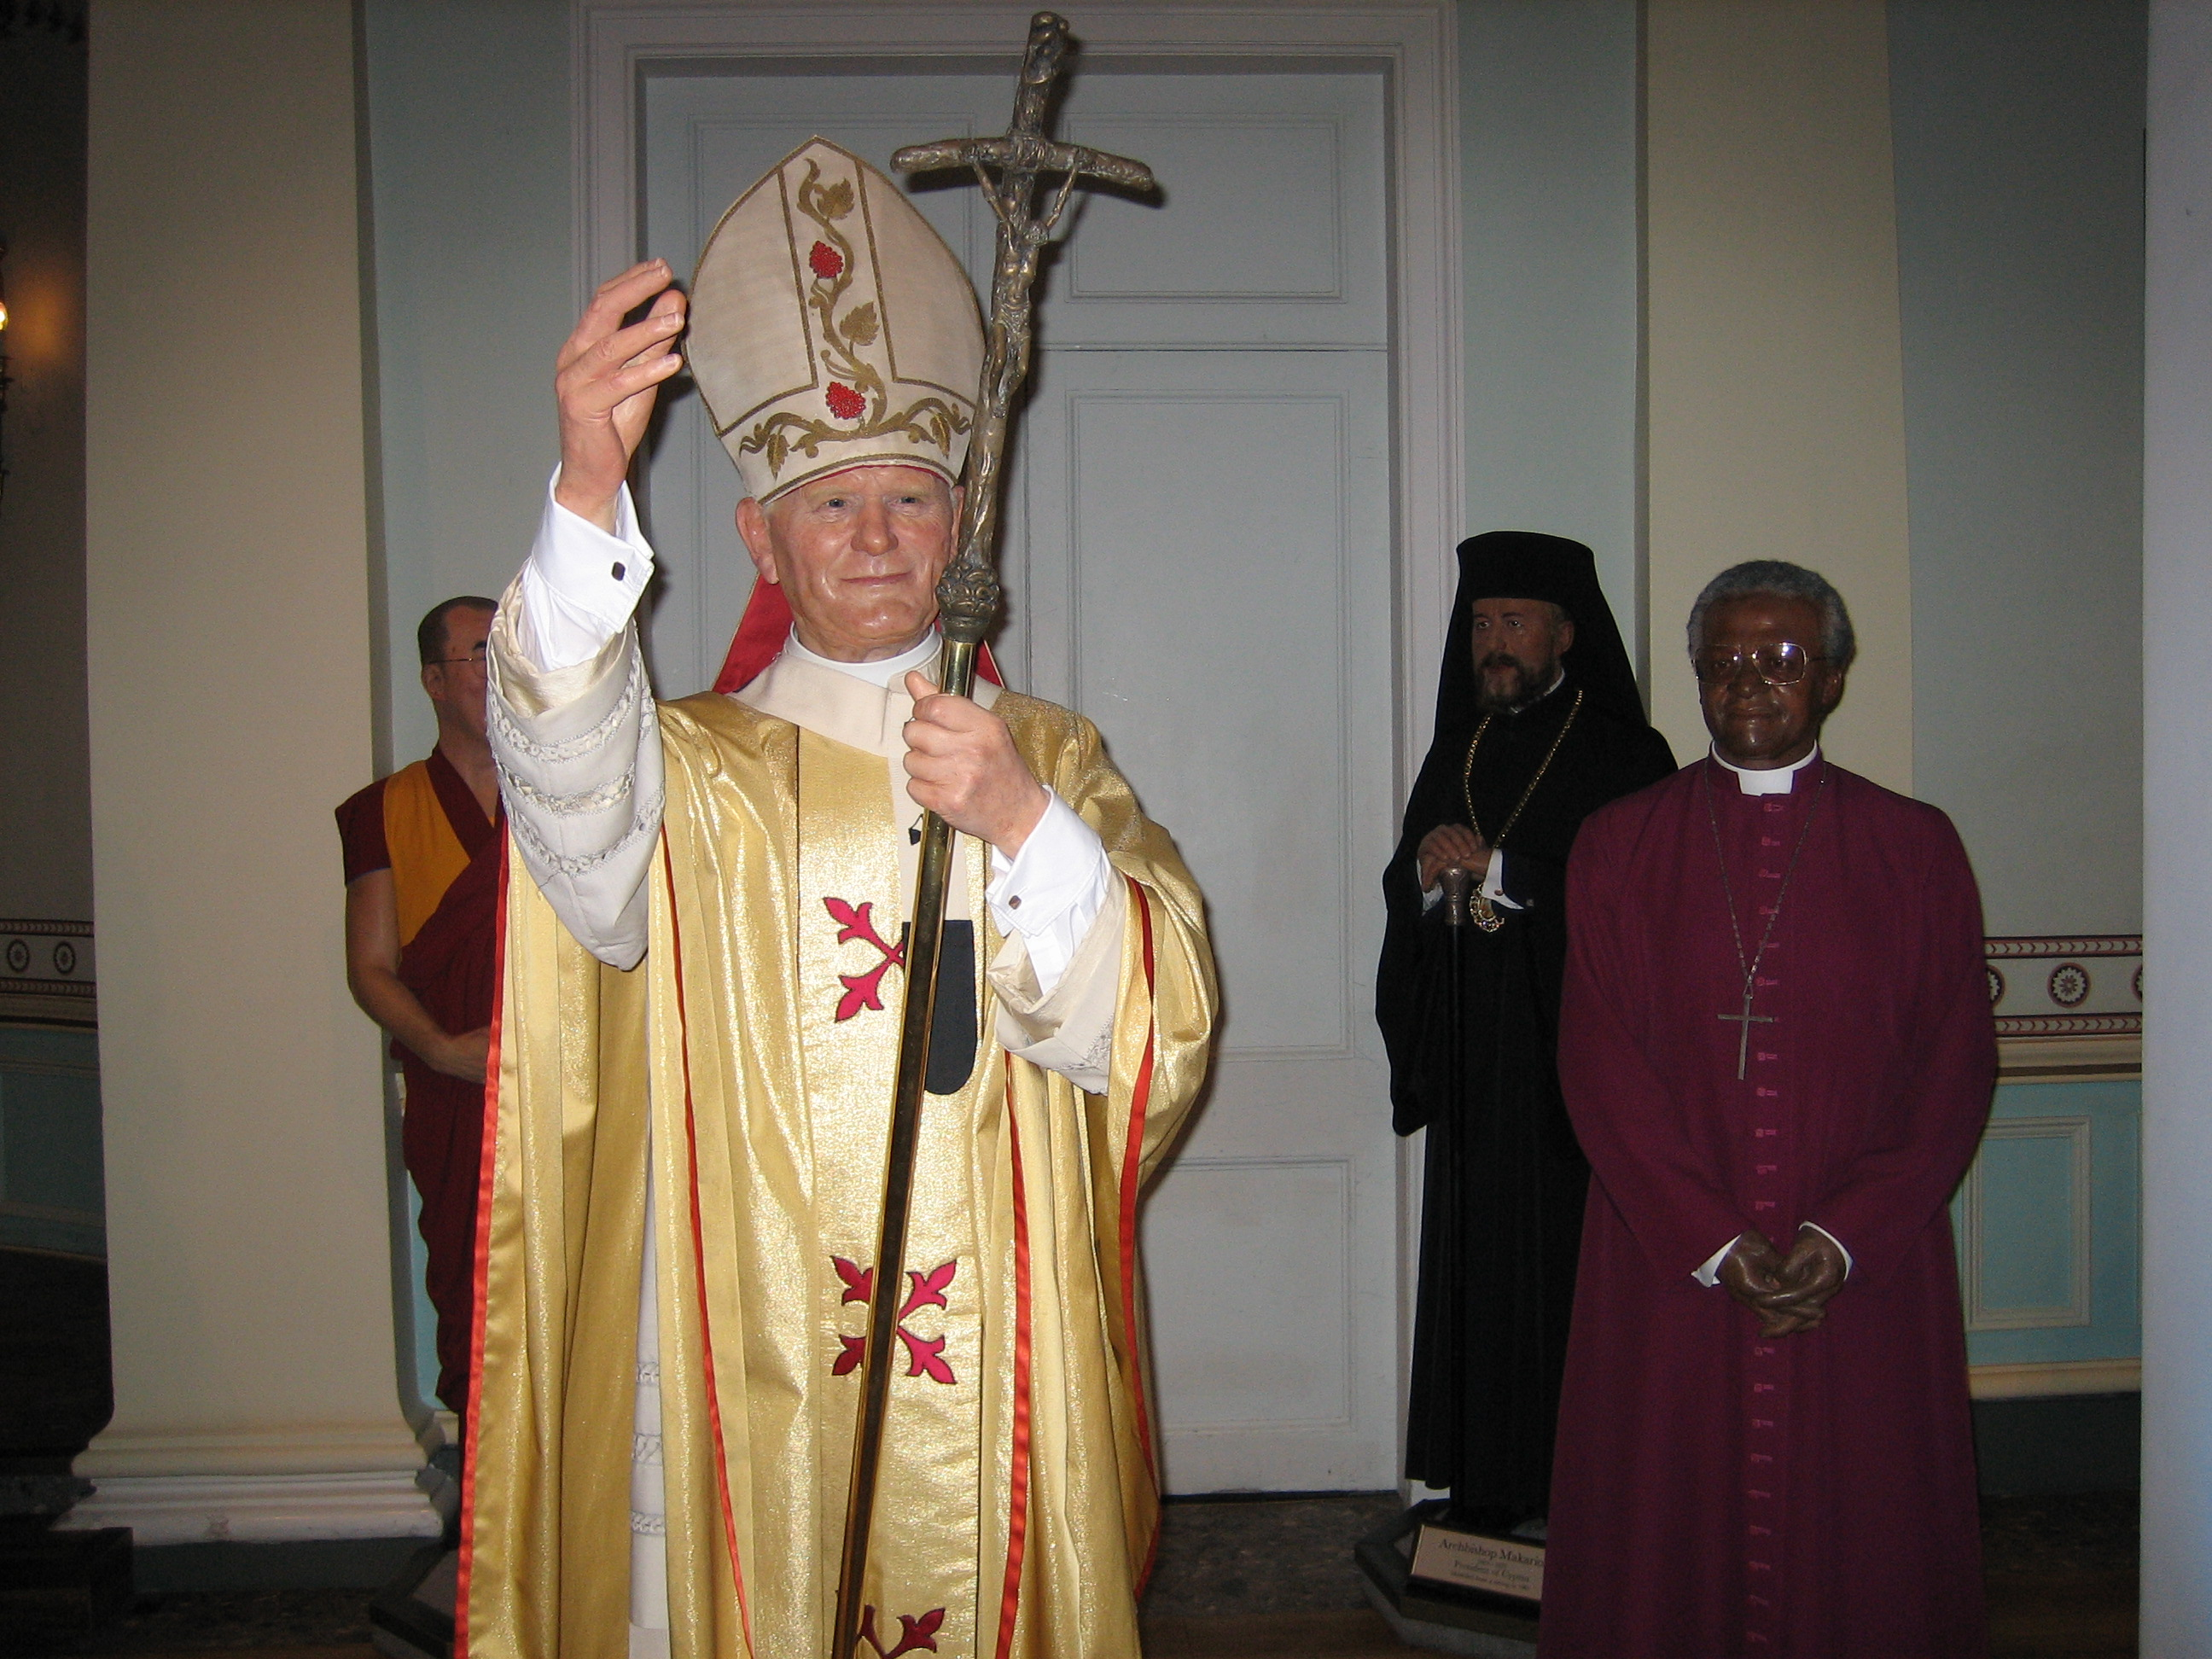 3b0ef07d5 File:Religious leaders in Madame Tussauds London.jpg - Wikimedia Commons